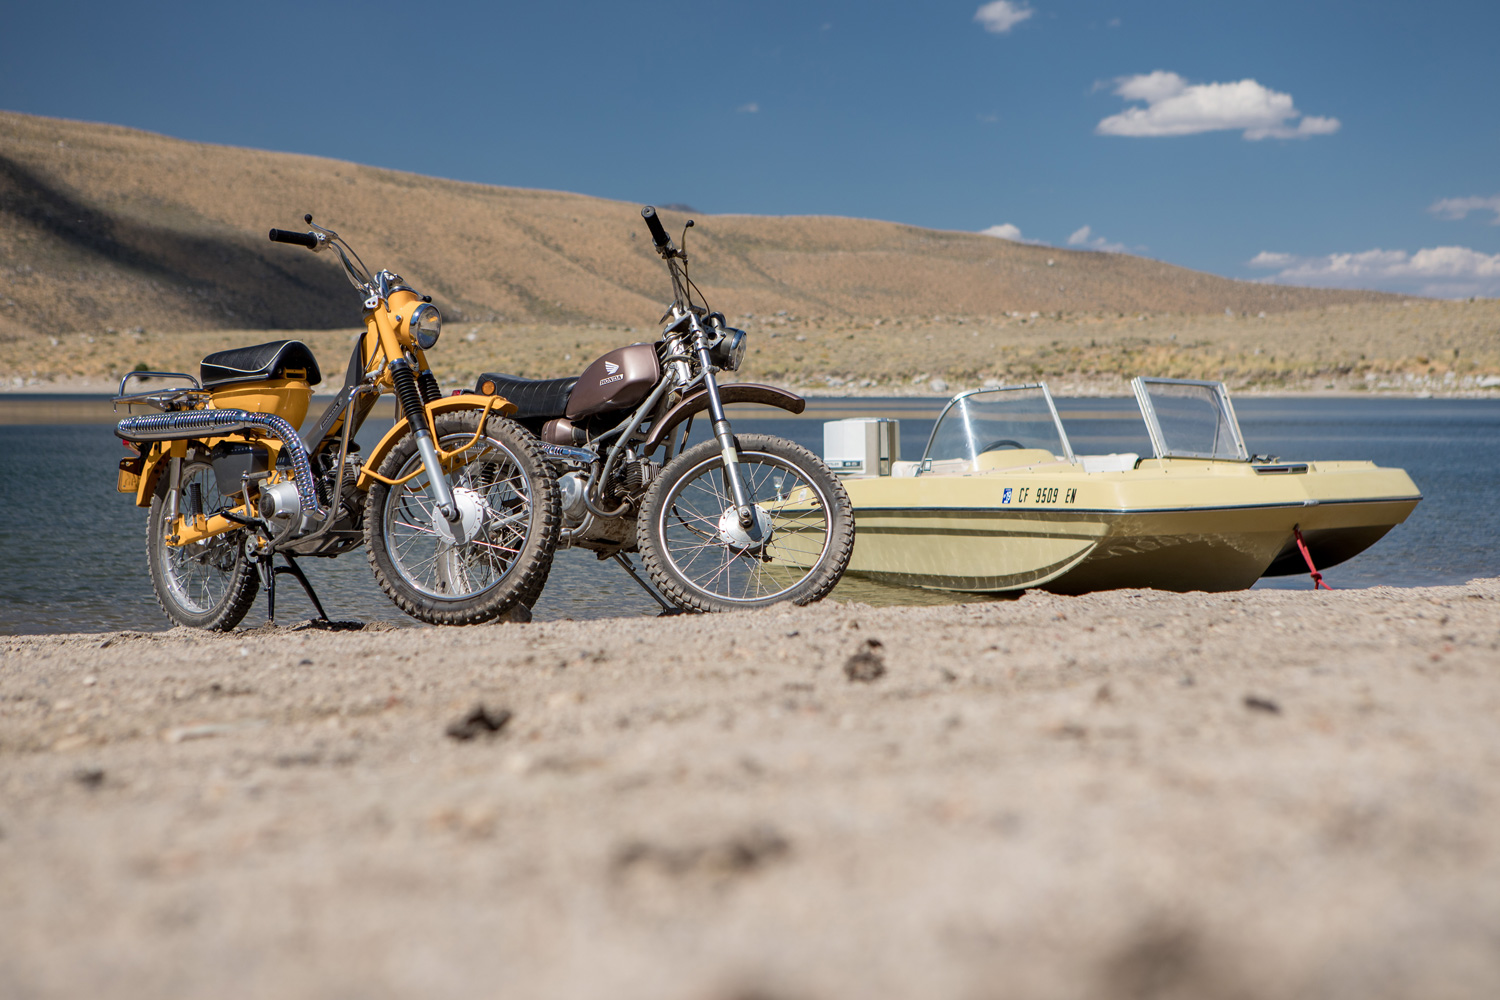 You need the right tools to match your sense of adventure. You can't go wrong with a Craigslist Chrysler boat and a couple of small-displacement trail bikes.